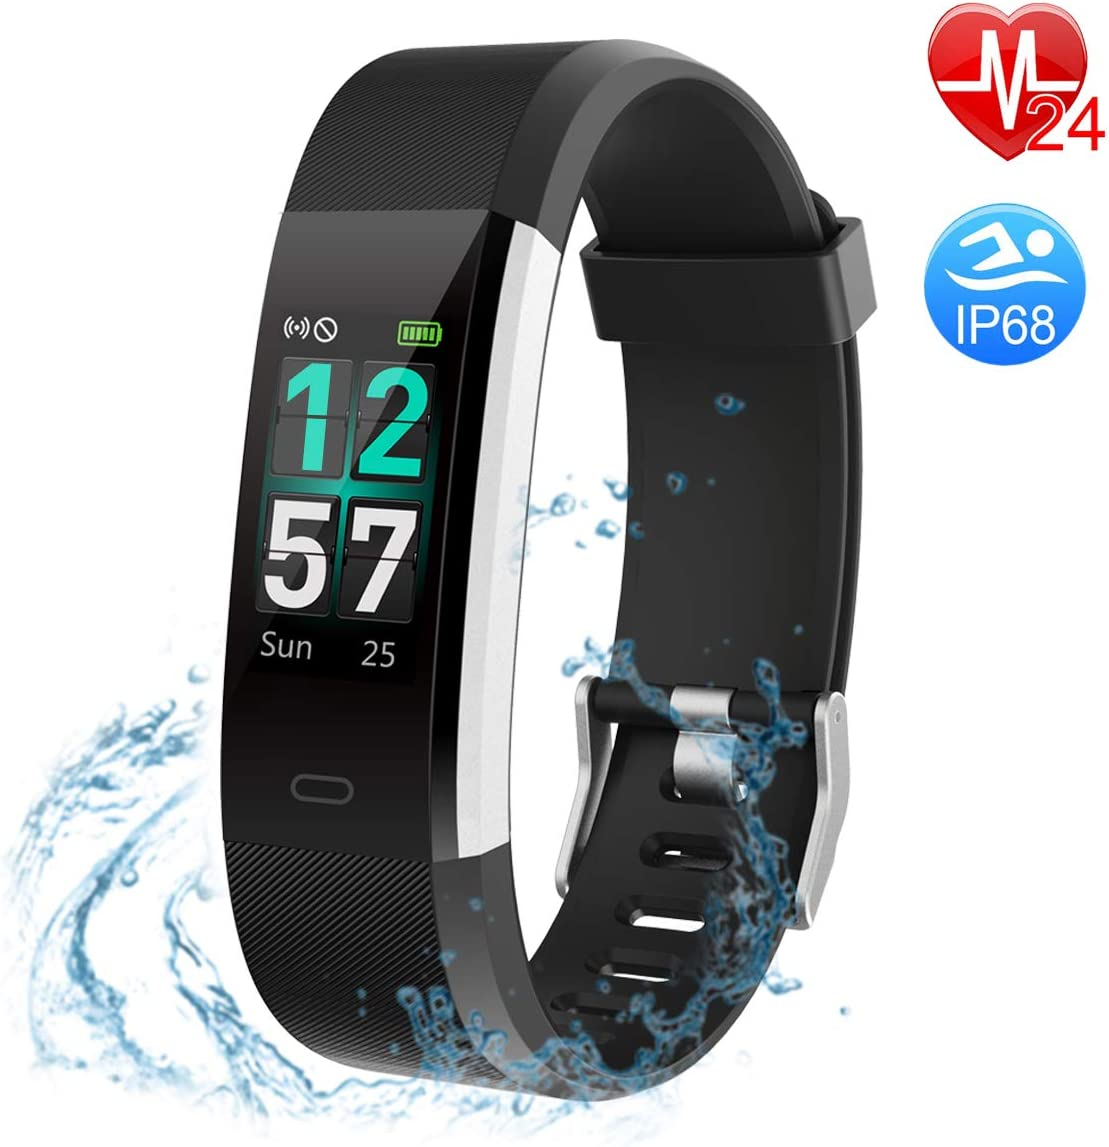 Fitness Tracker COLOR Screen, Heart Rate Monitor Activity Tracker IP68 Waterproof for Kids Men Women Smart Band for Heart Rate Pedometer Watch Calorie Counter Call Remind, Goal Setting, with Veryfitpr